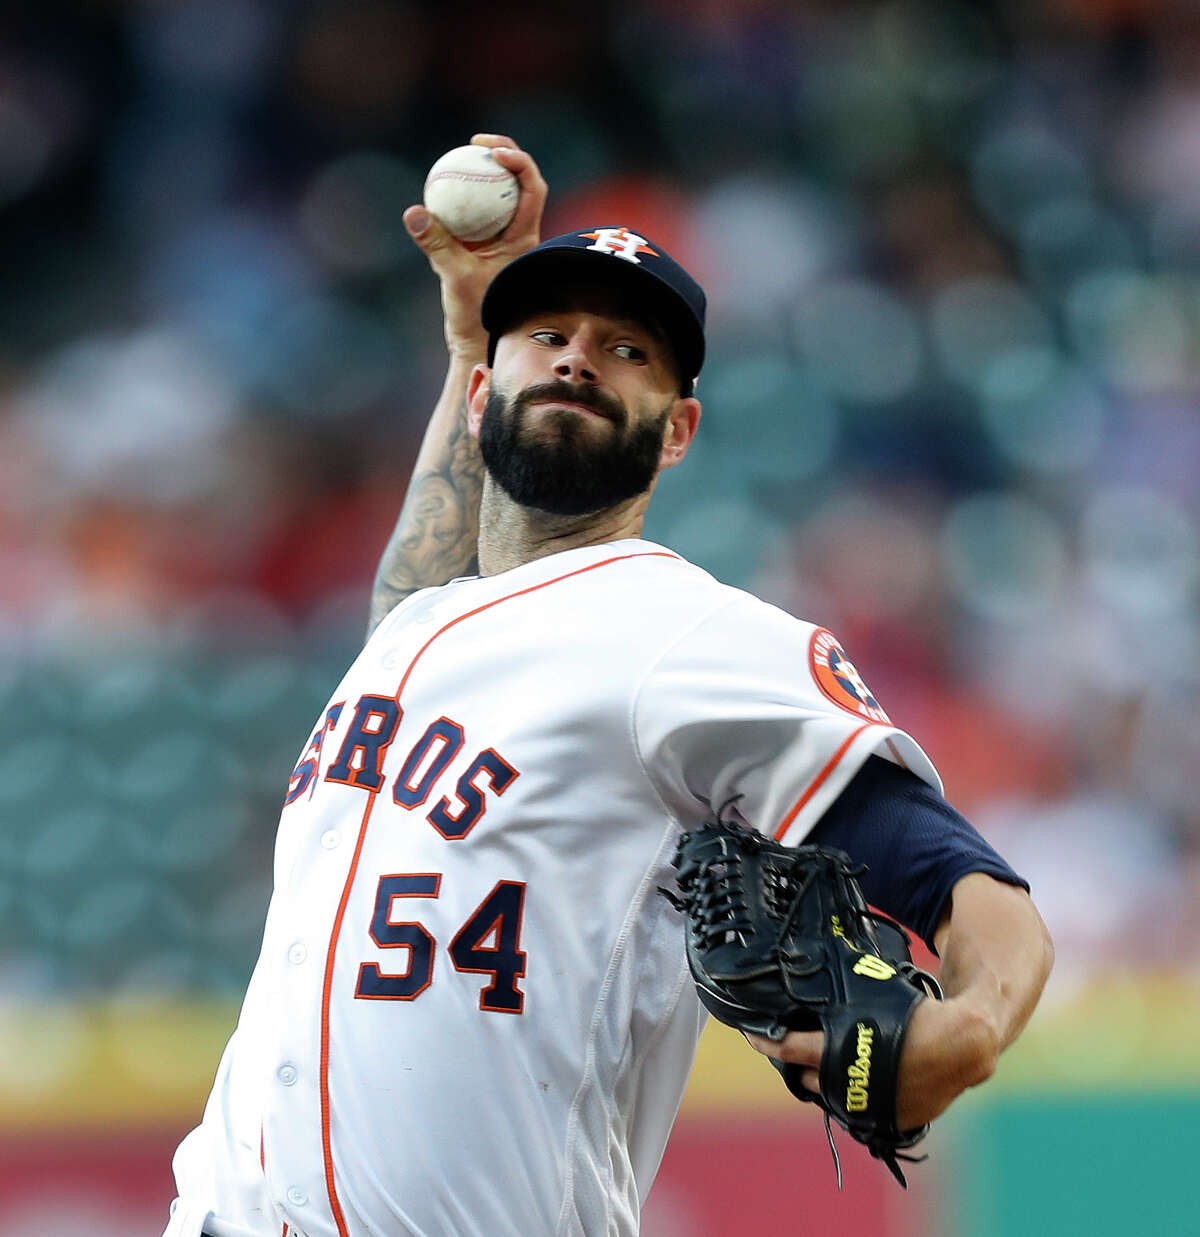 After what amounted to a momentary demotion to the bullpen, Mike Fiers has won three consecutive starts.